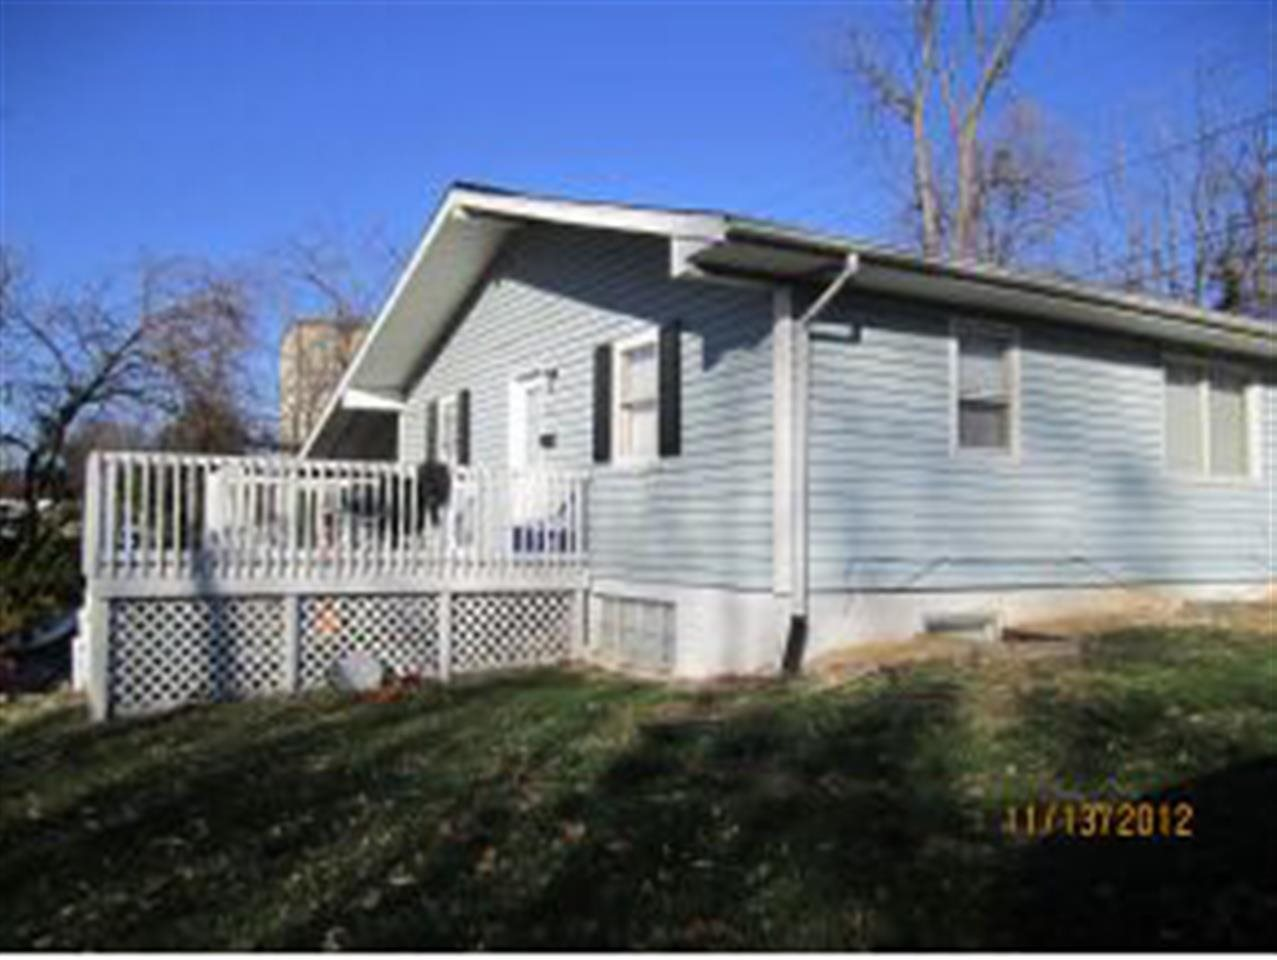 Rental Homes for Rent, ListingId:27216406, location: 428 N Clark St Bloomington 47401